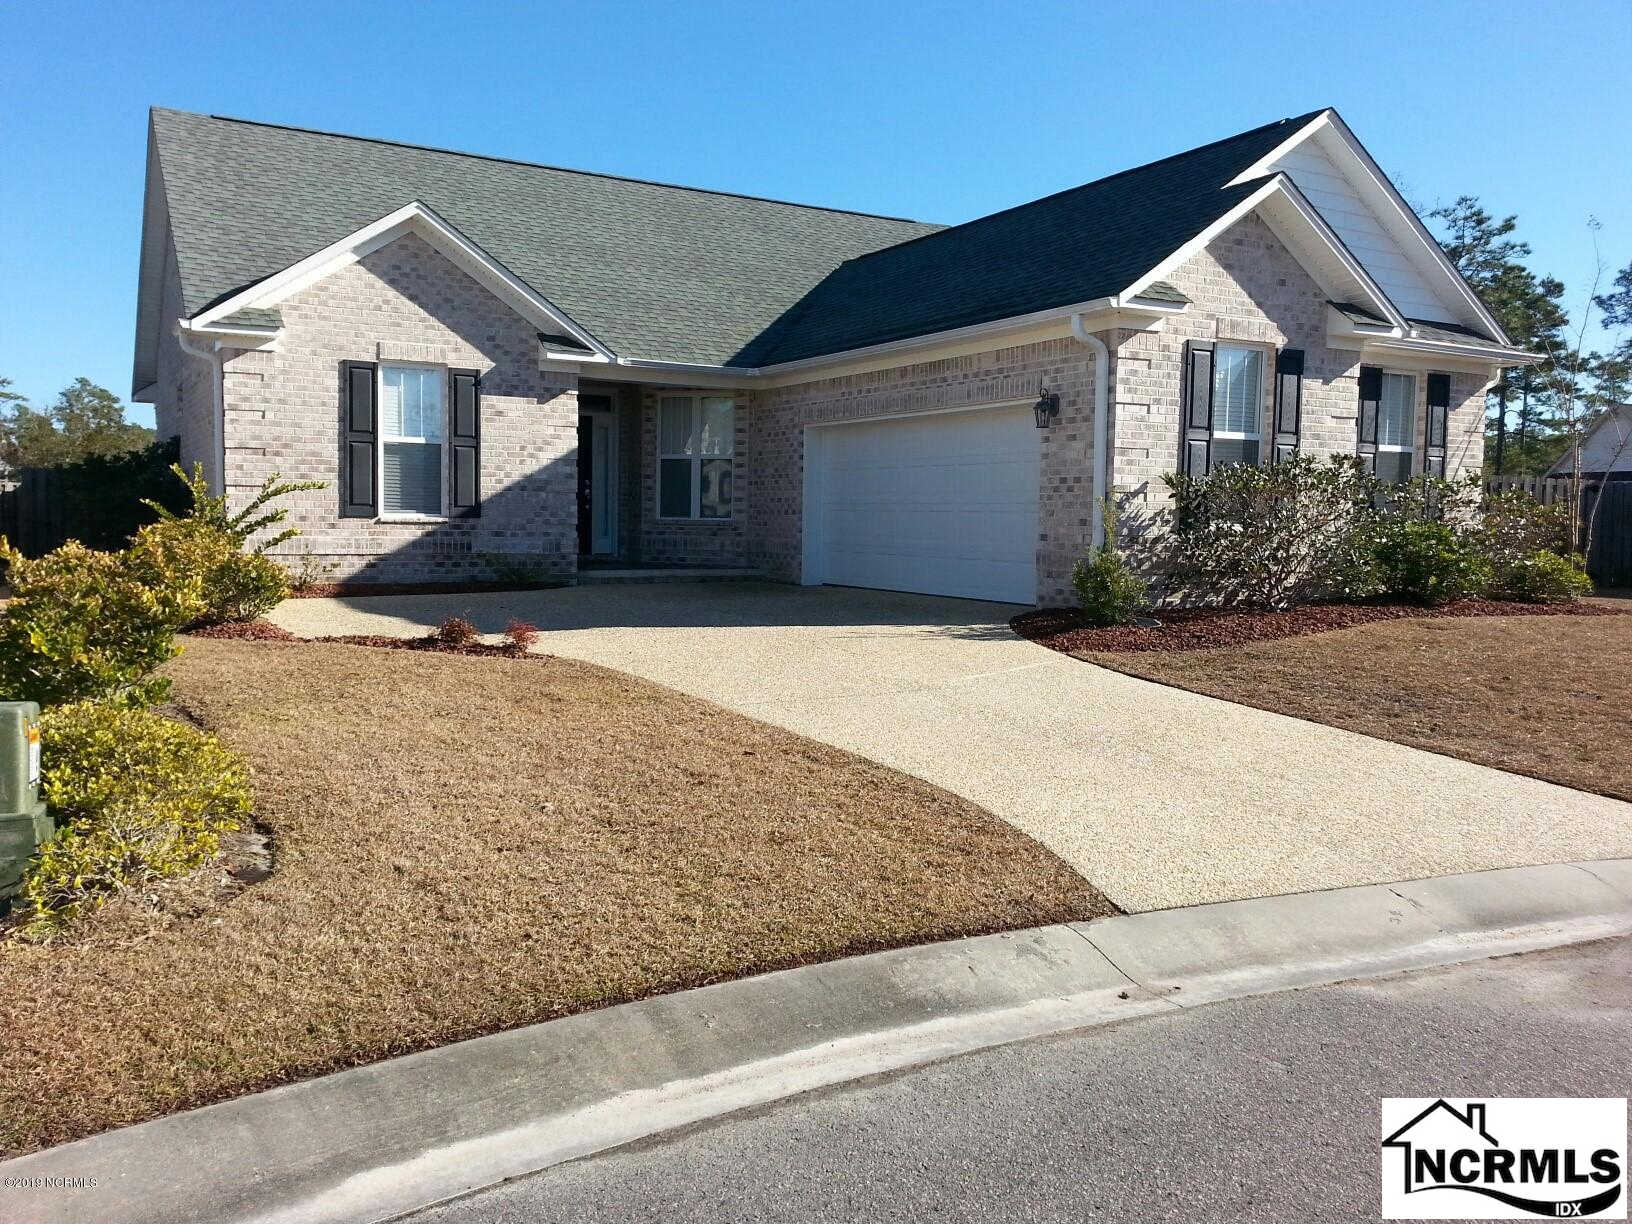 1407 Vitis Court, Bolivia, NC 28422 is now new to the market!